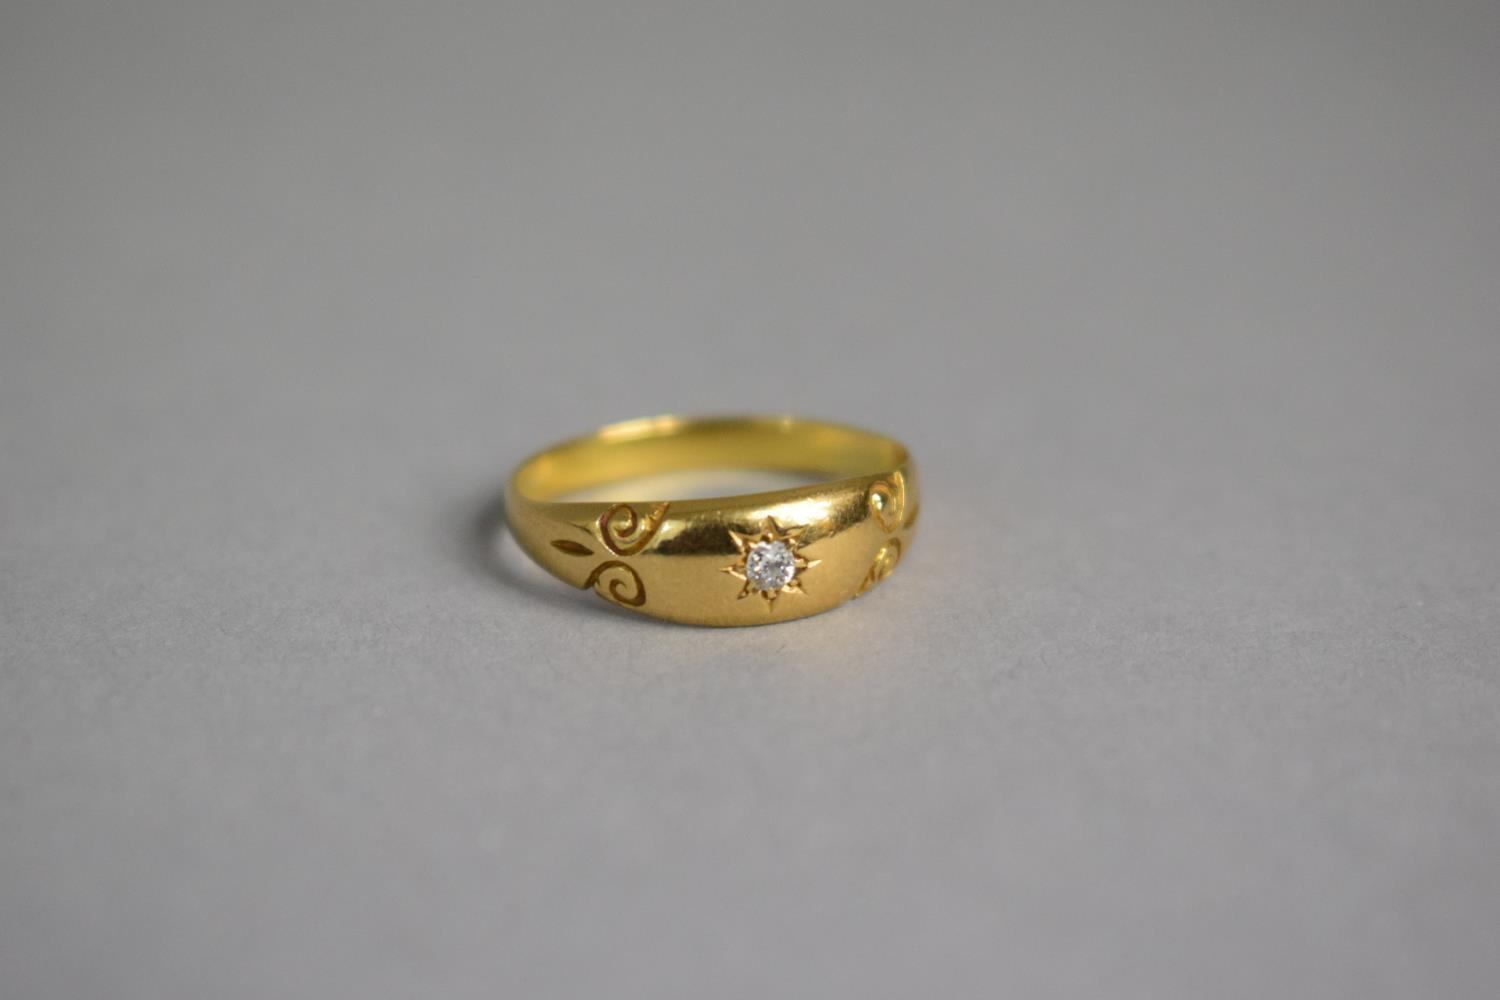 Lot 310 - A Victorian Diamond and Yellow Metal Gypsy Ring, Having Central Diamond Chip and Scrolling Etched